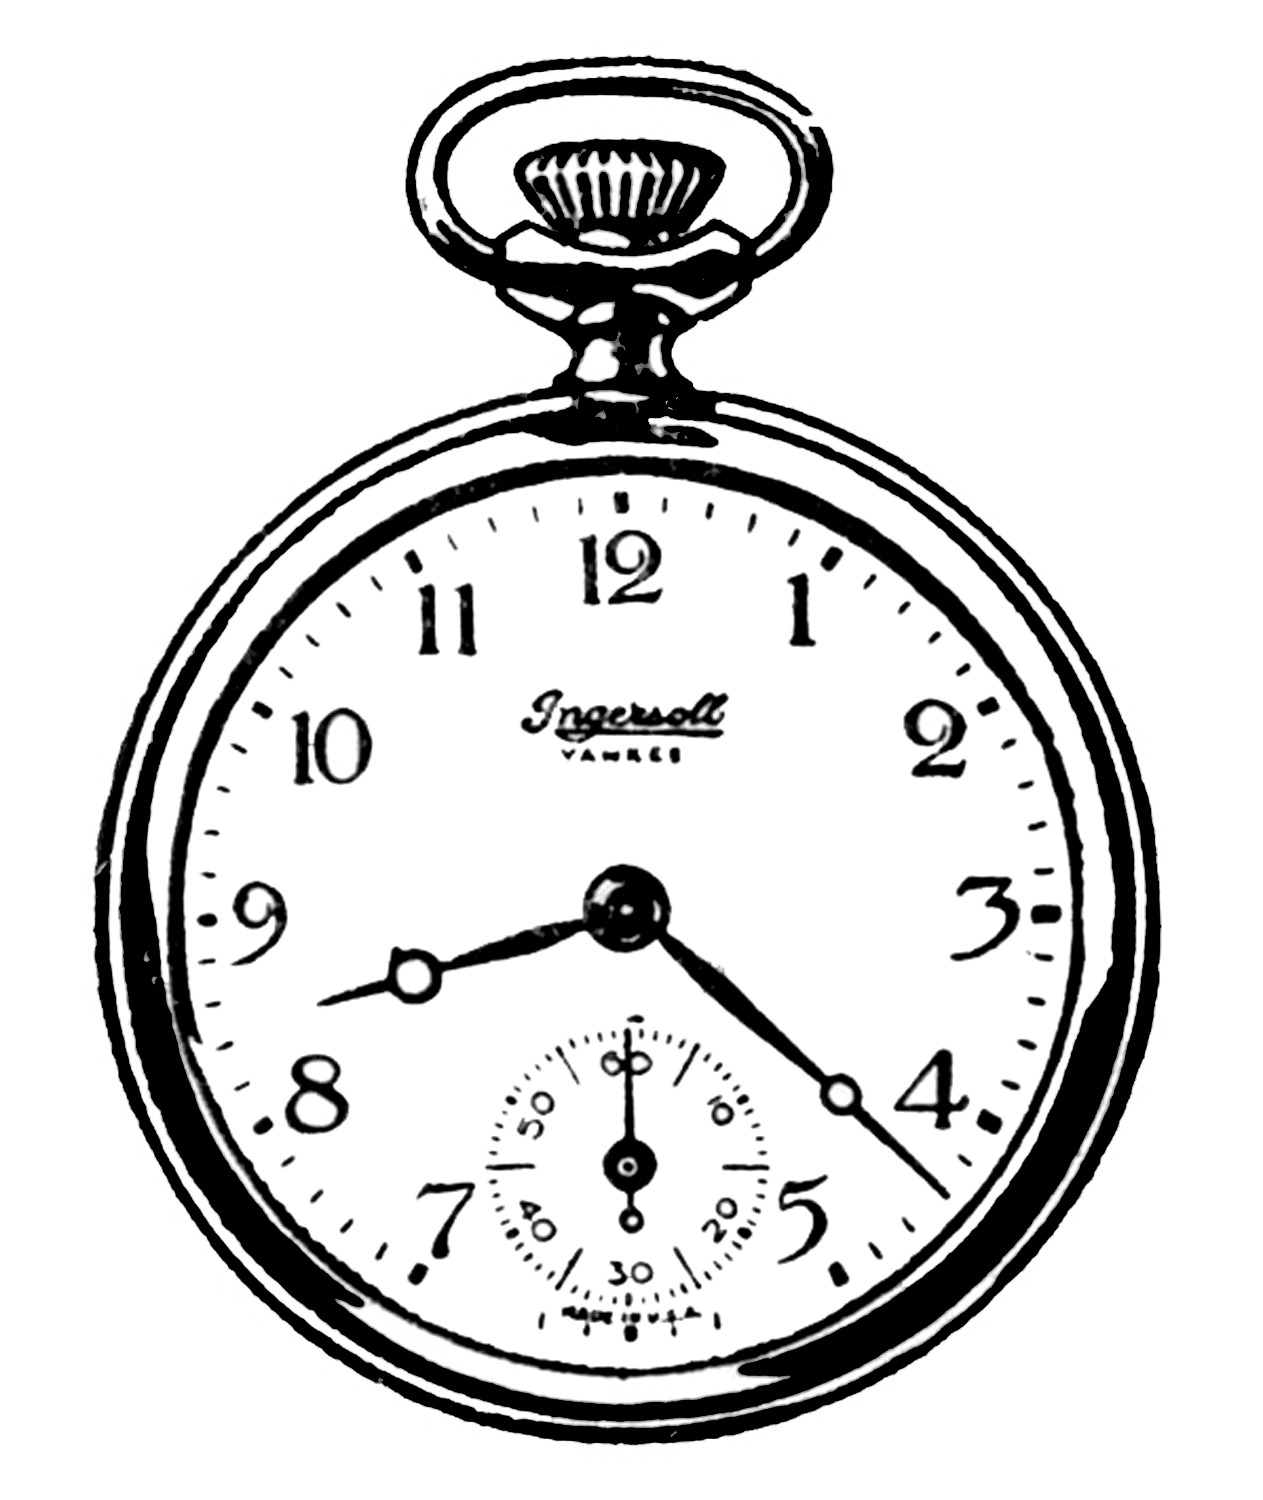 time clock drawing at getdrawings com free for personal use time